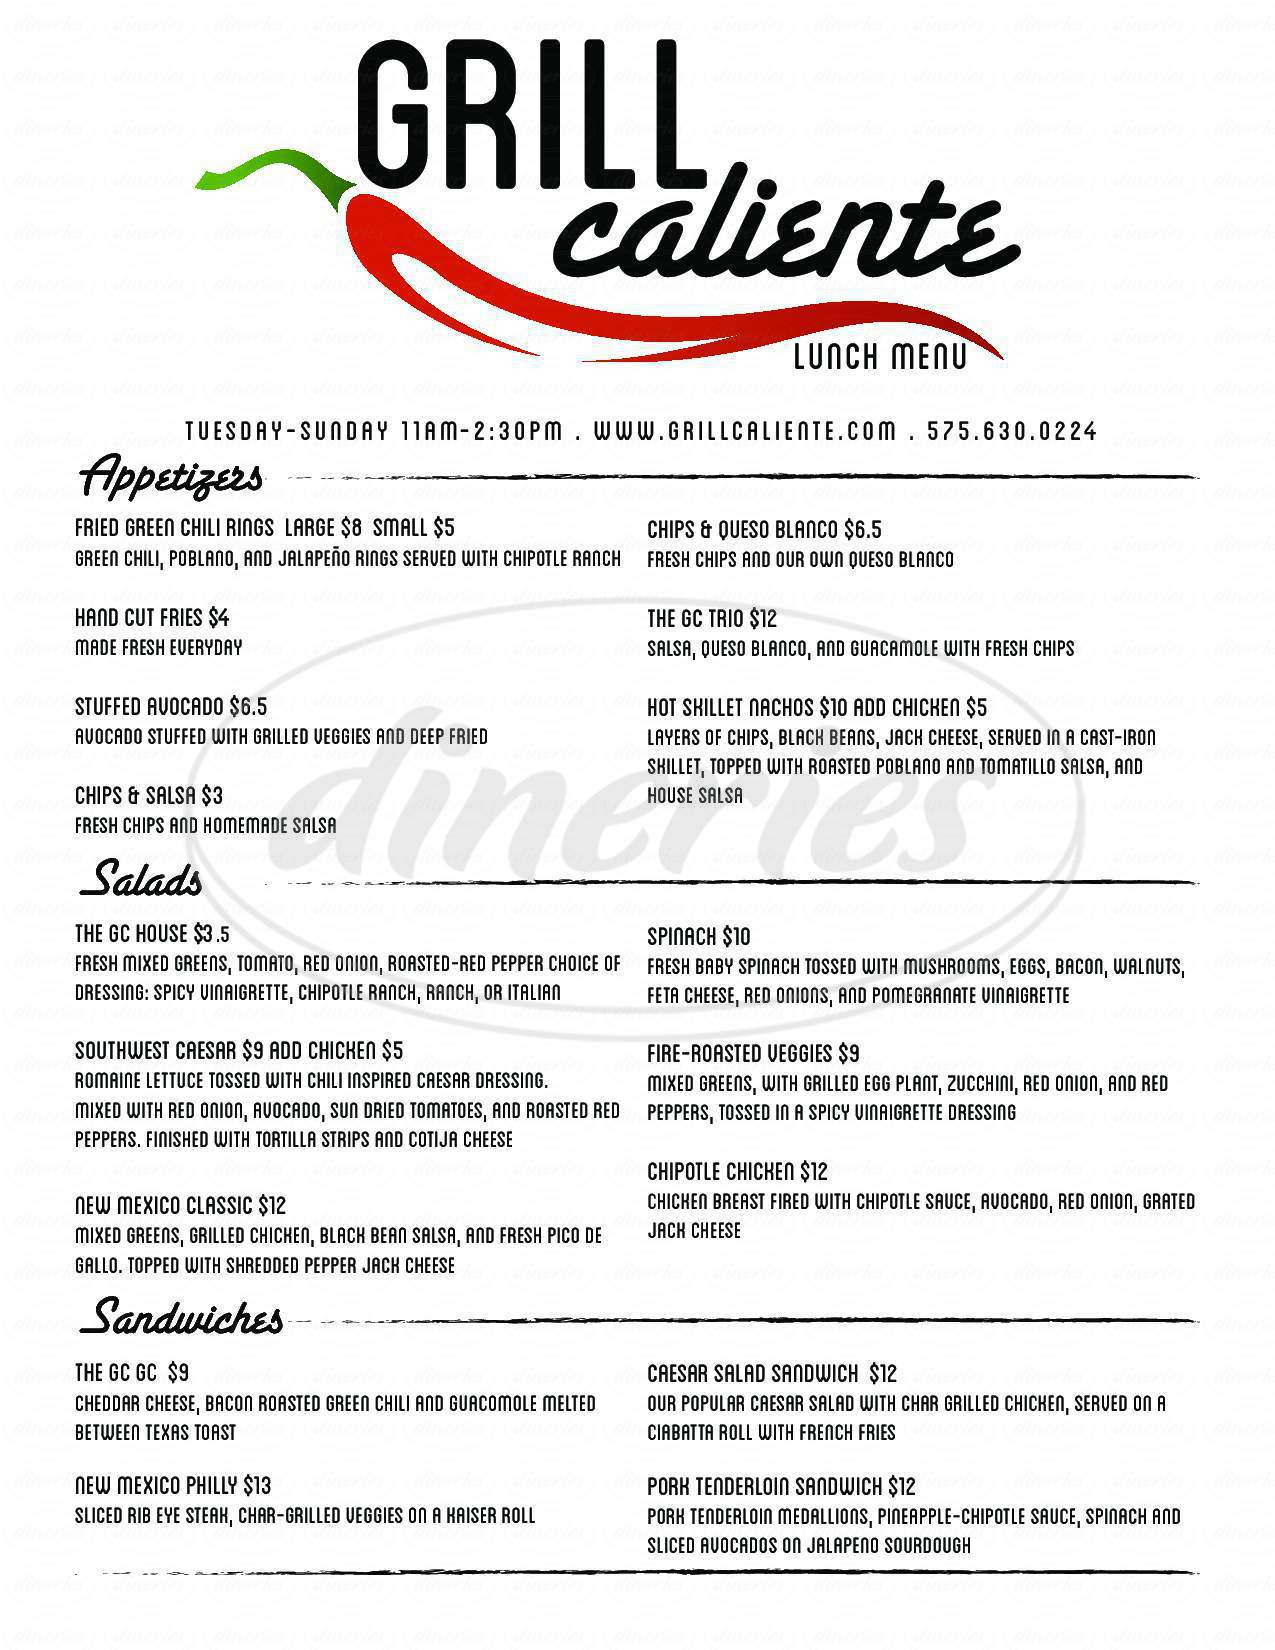 menu for Grill Caliente